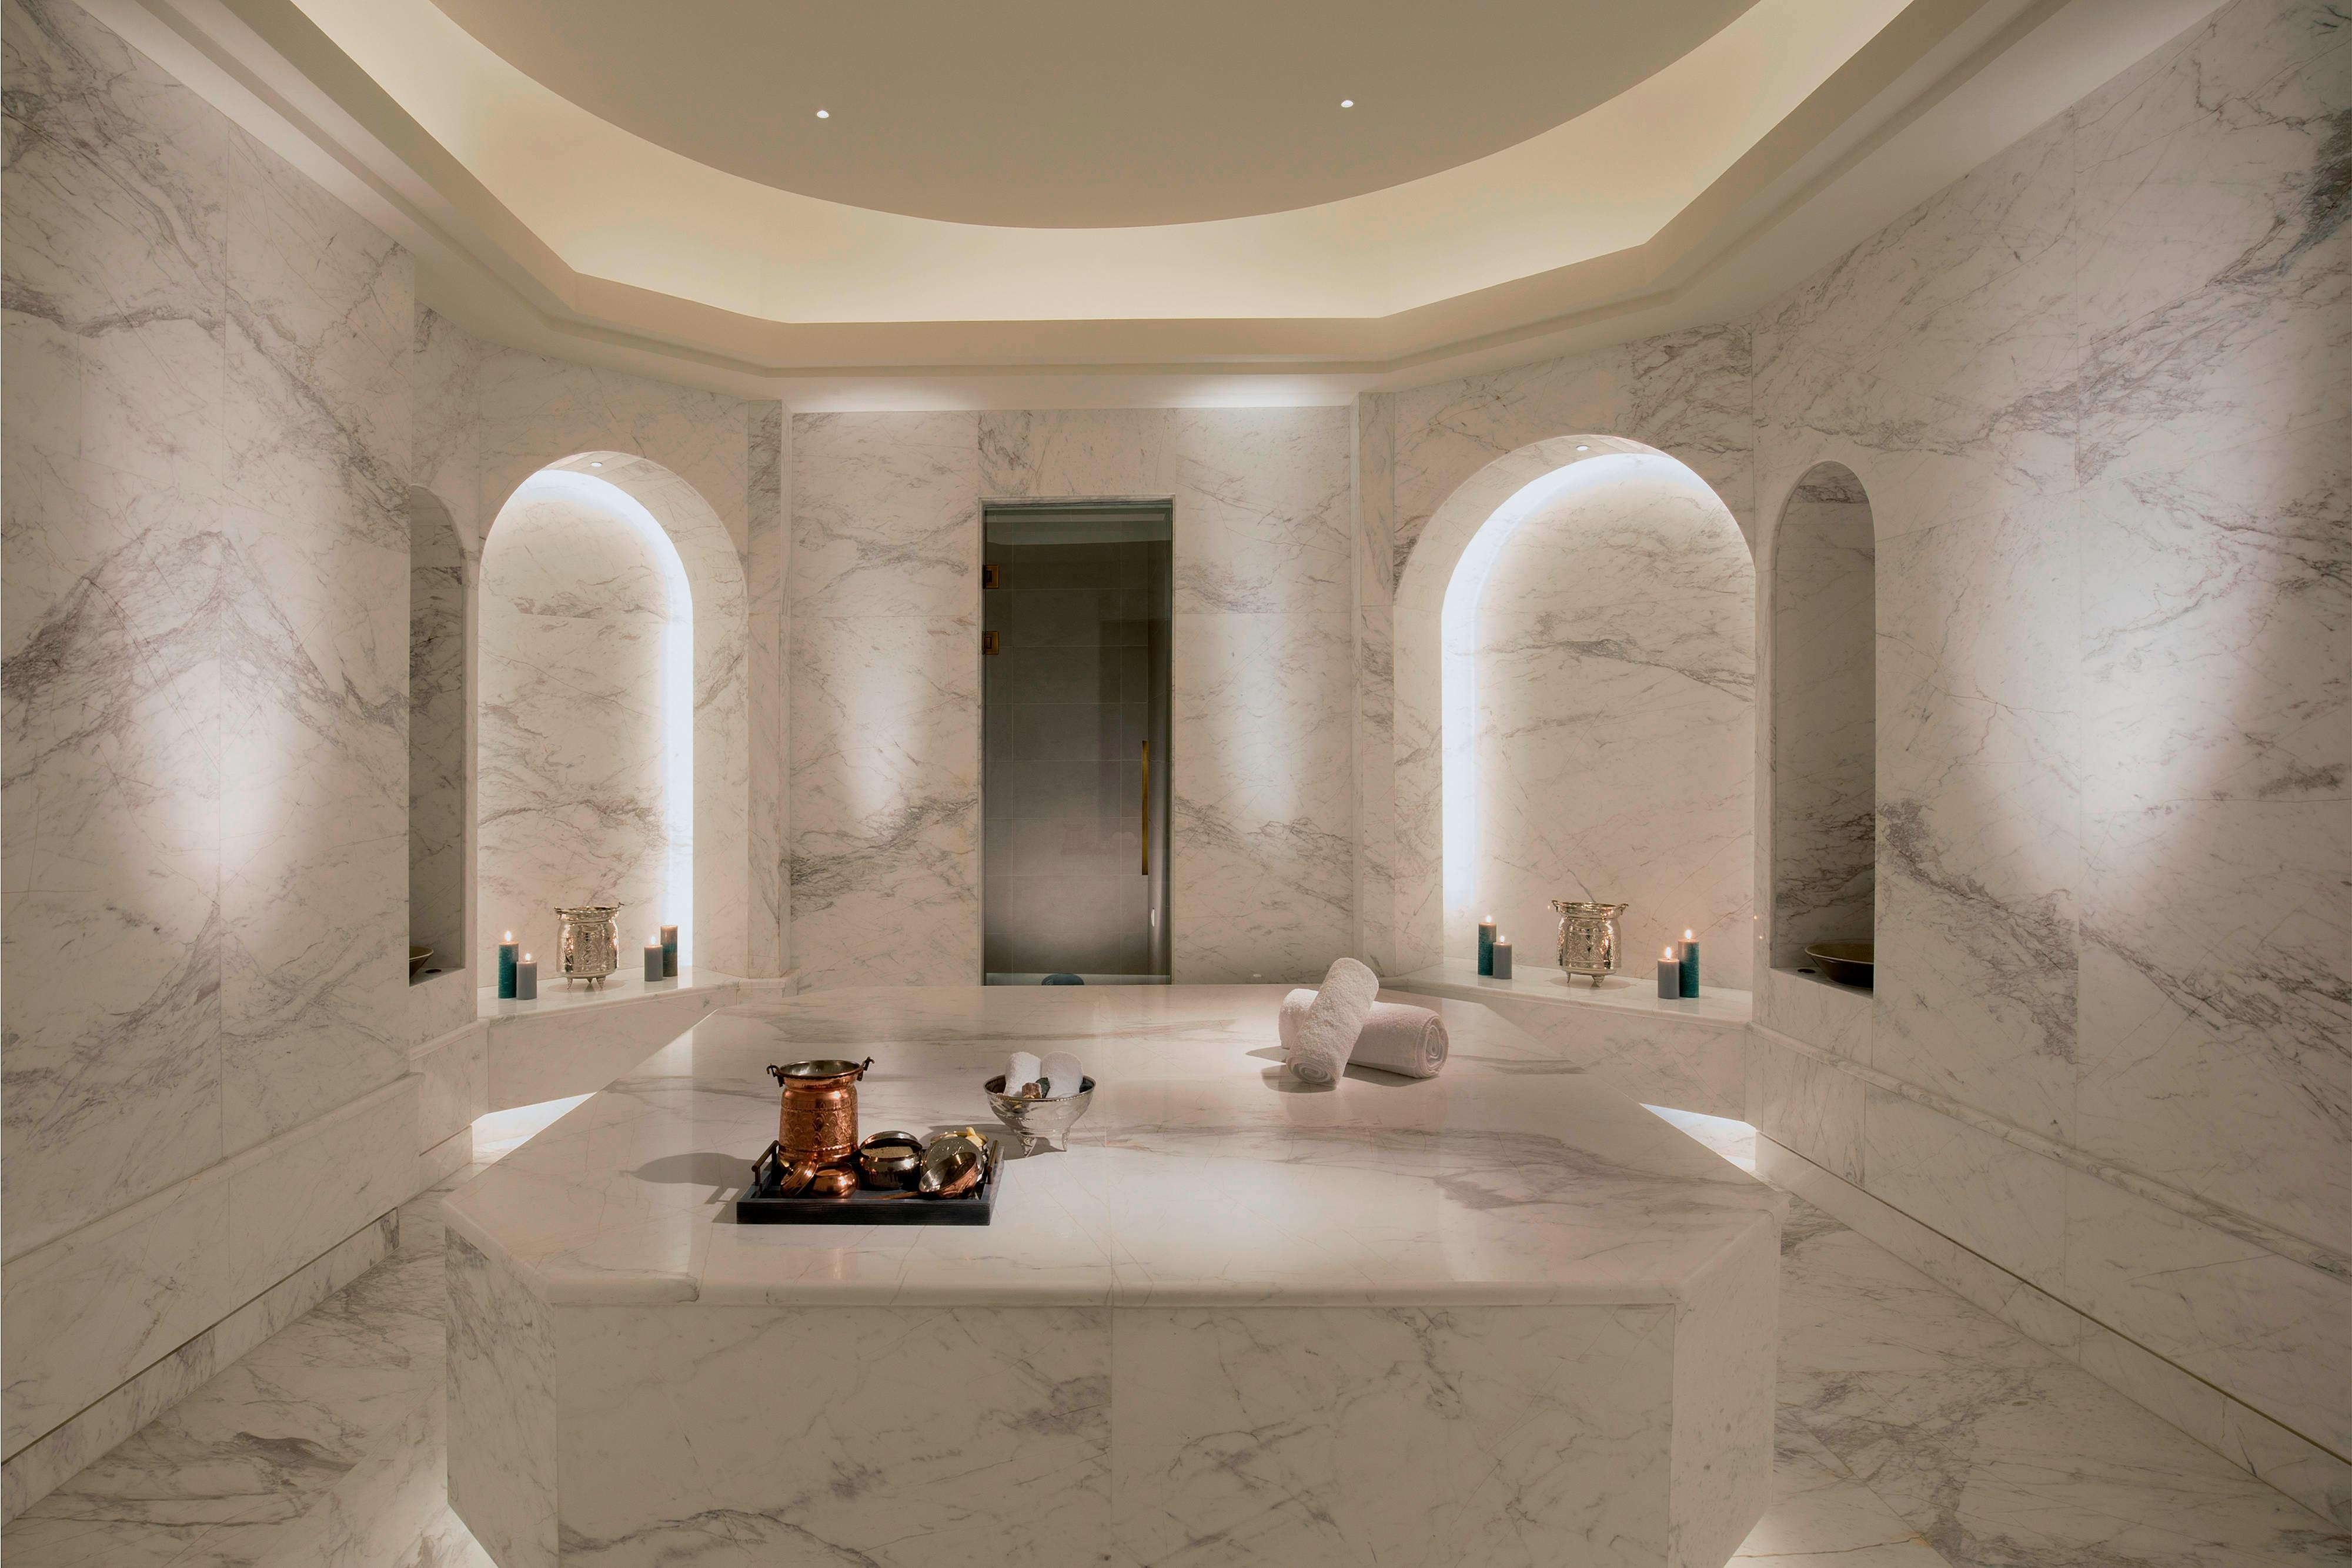 Iridium Spa Hammam